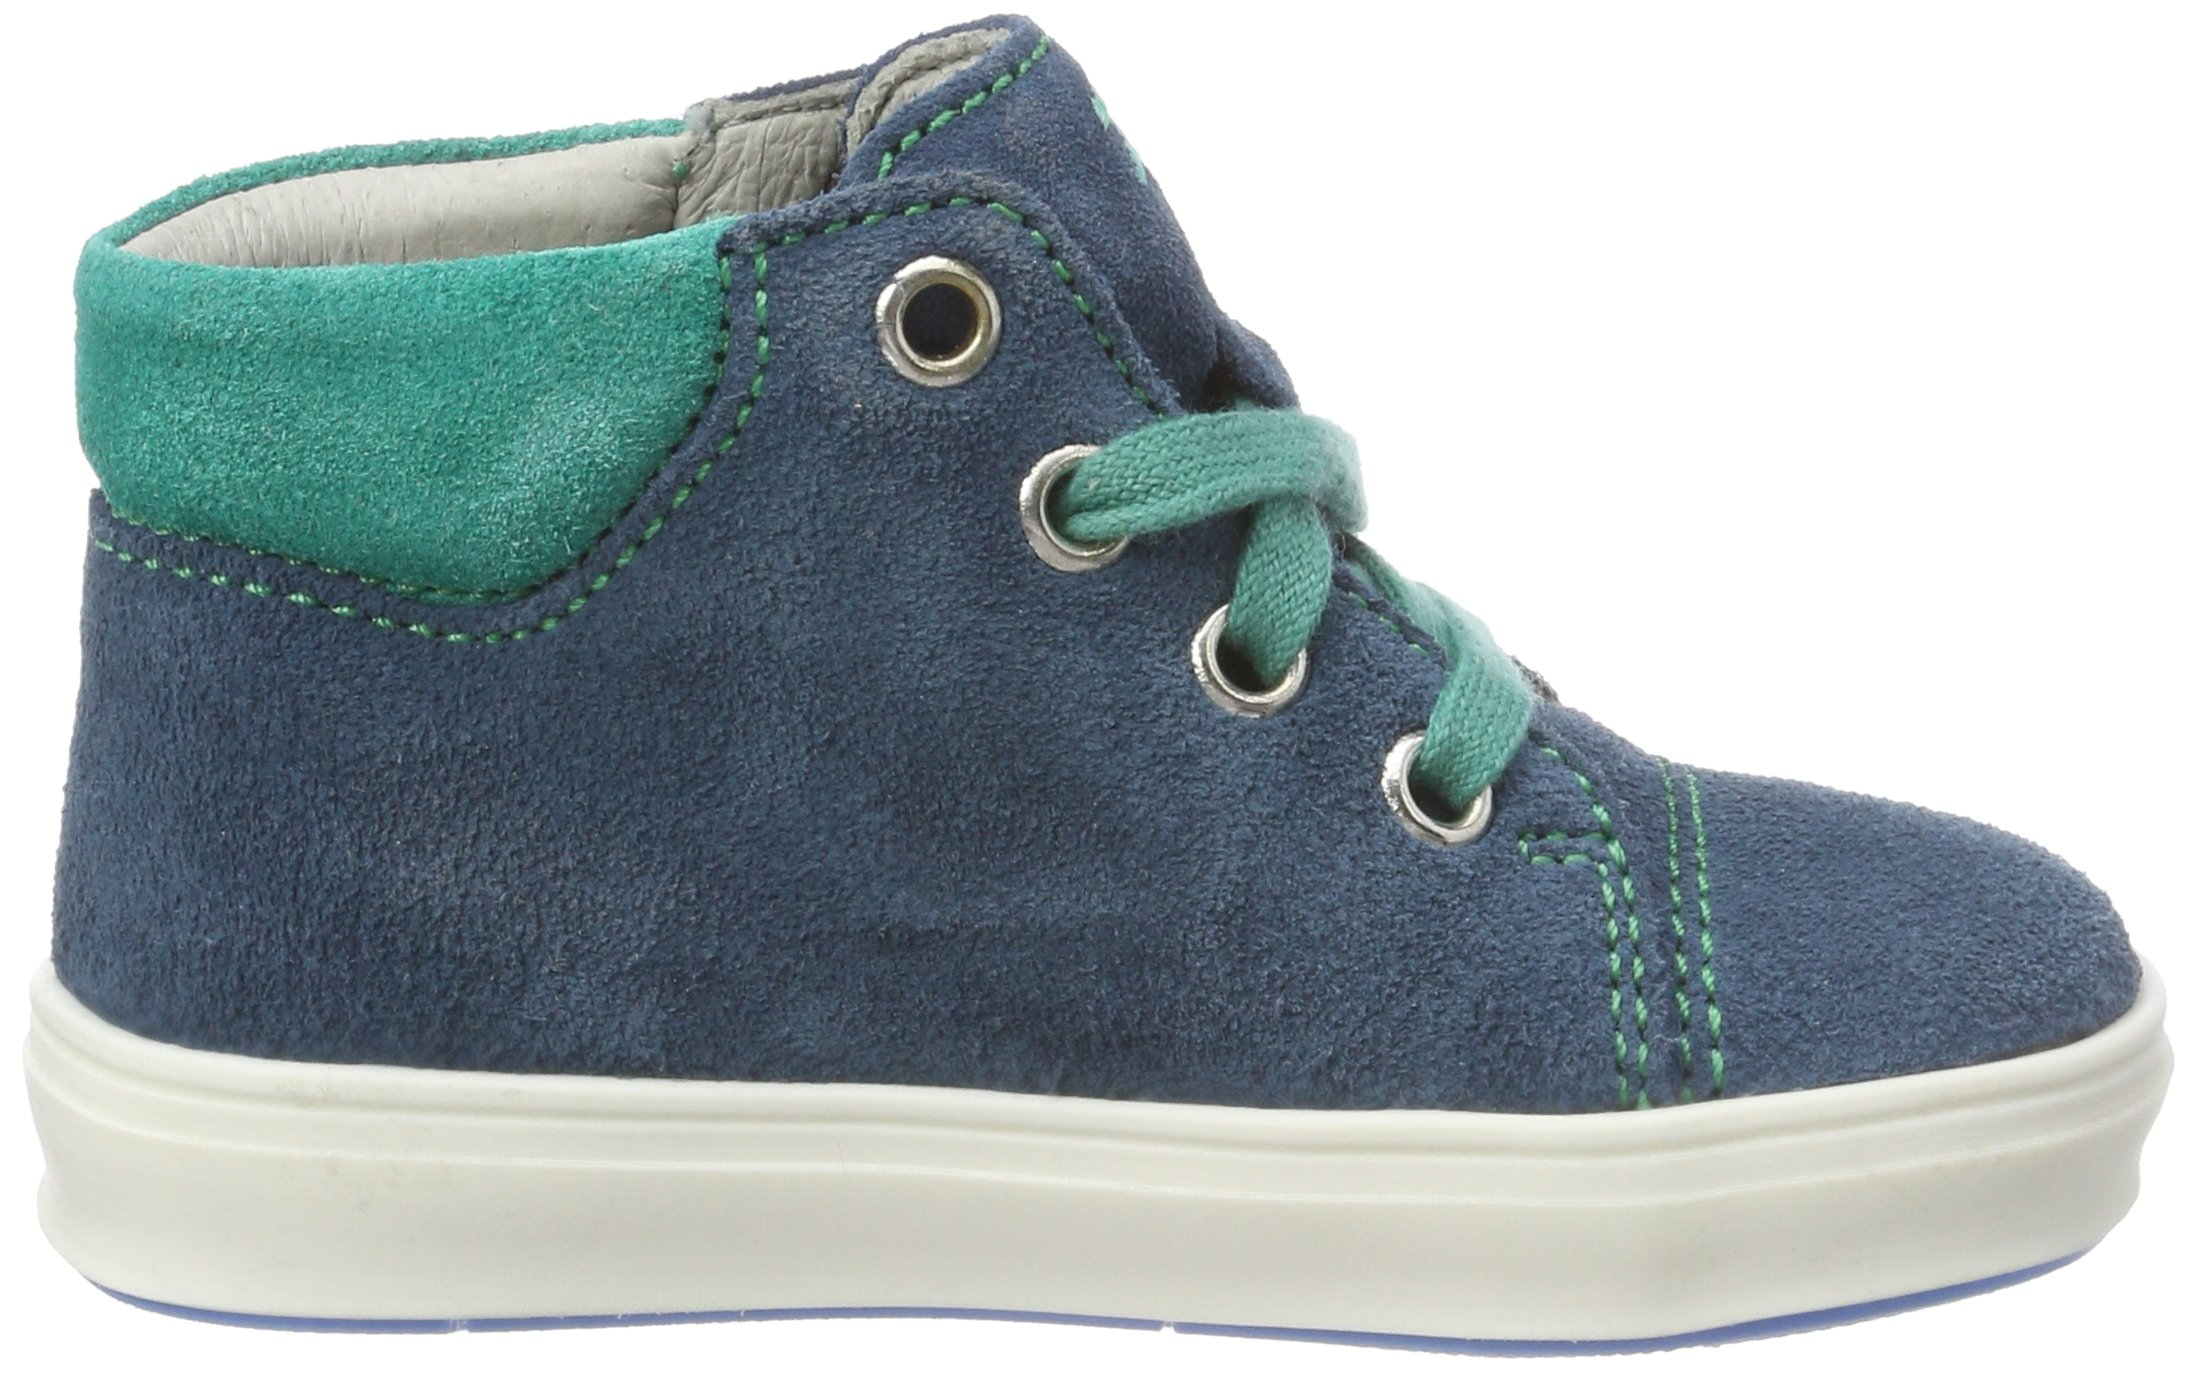 Richter Kinderschuhe Boys' Jimmy Derbys, Blue (Pacific/Menta 6701), 7.5 UK by Richter Kinderschuhe (Image #6)